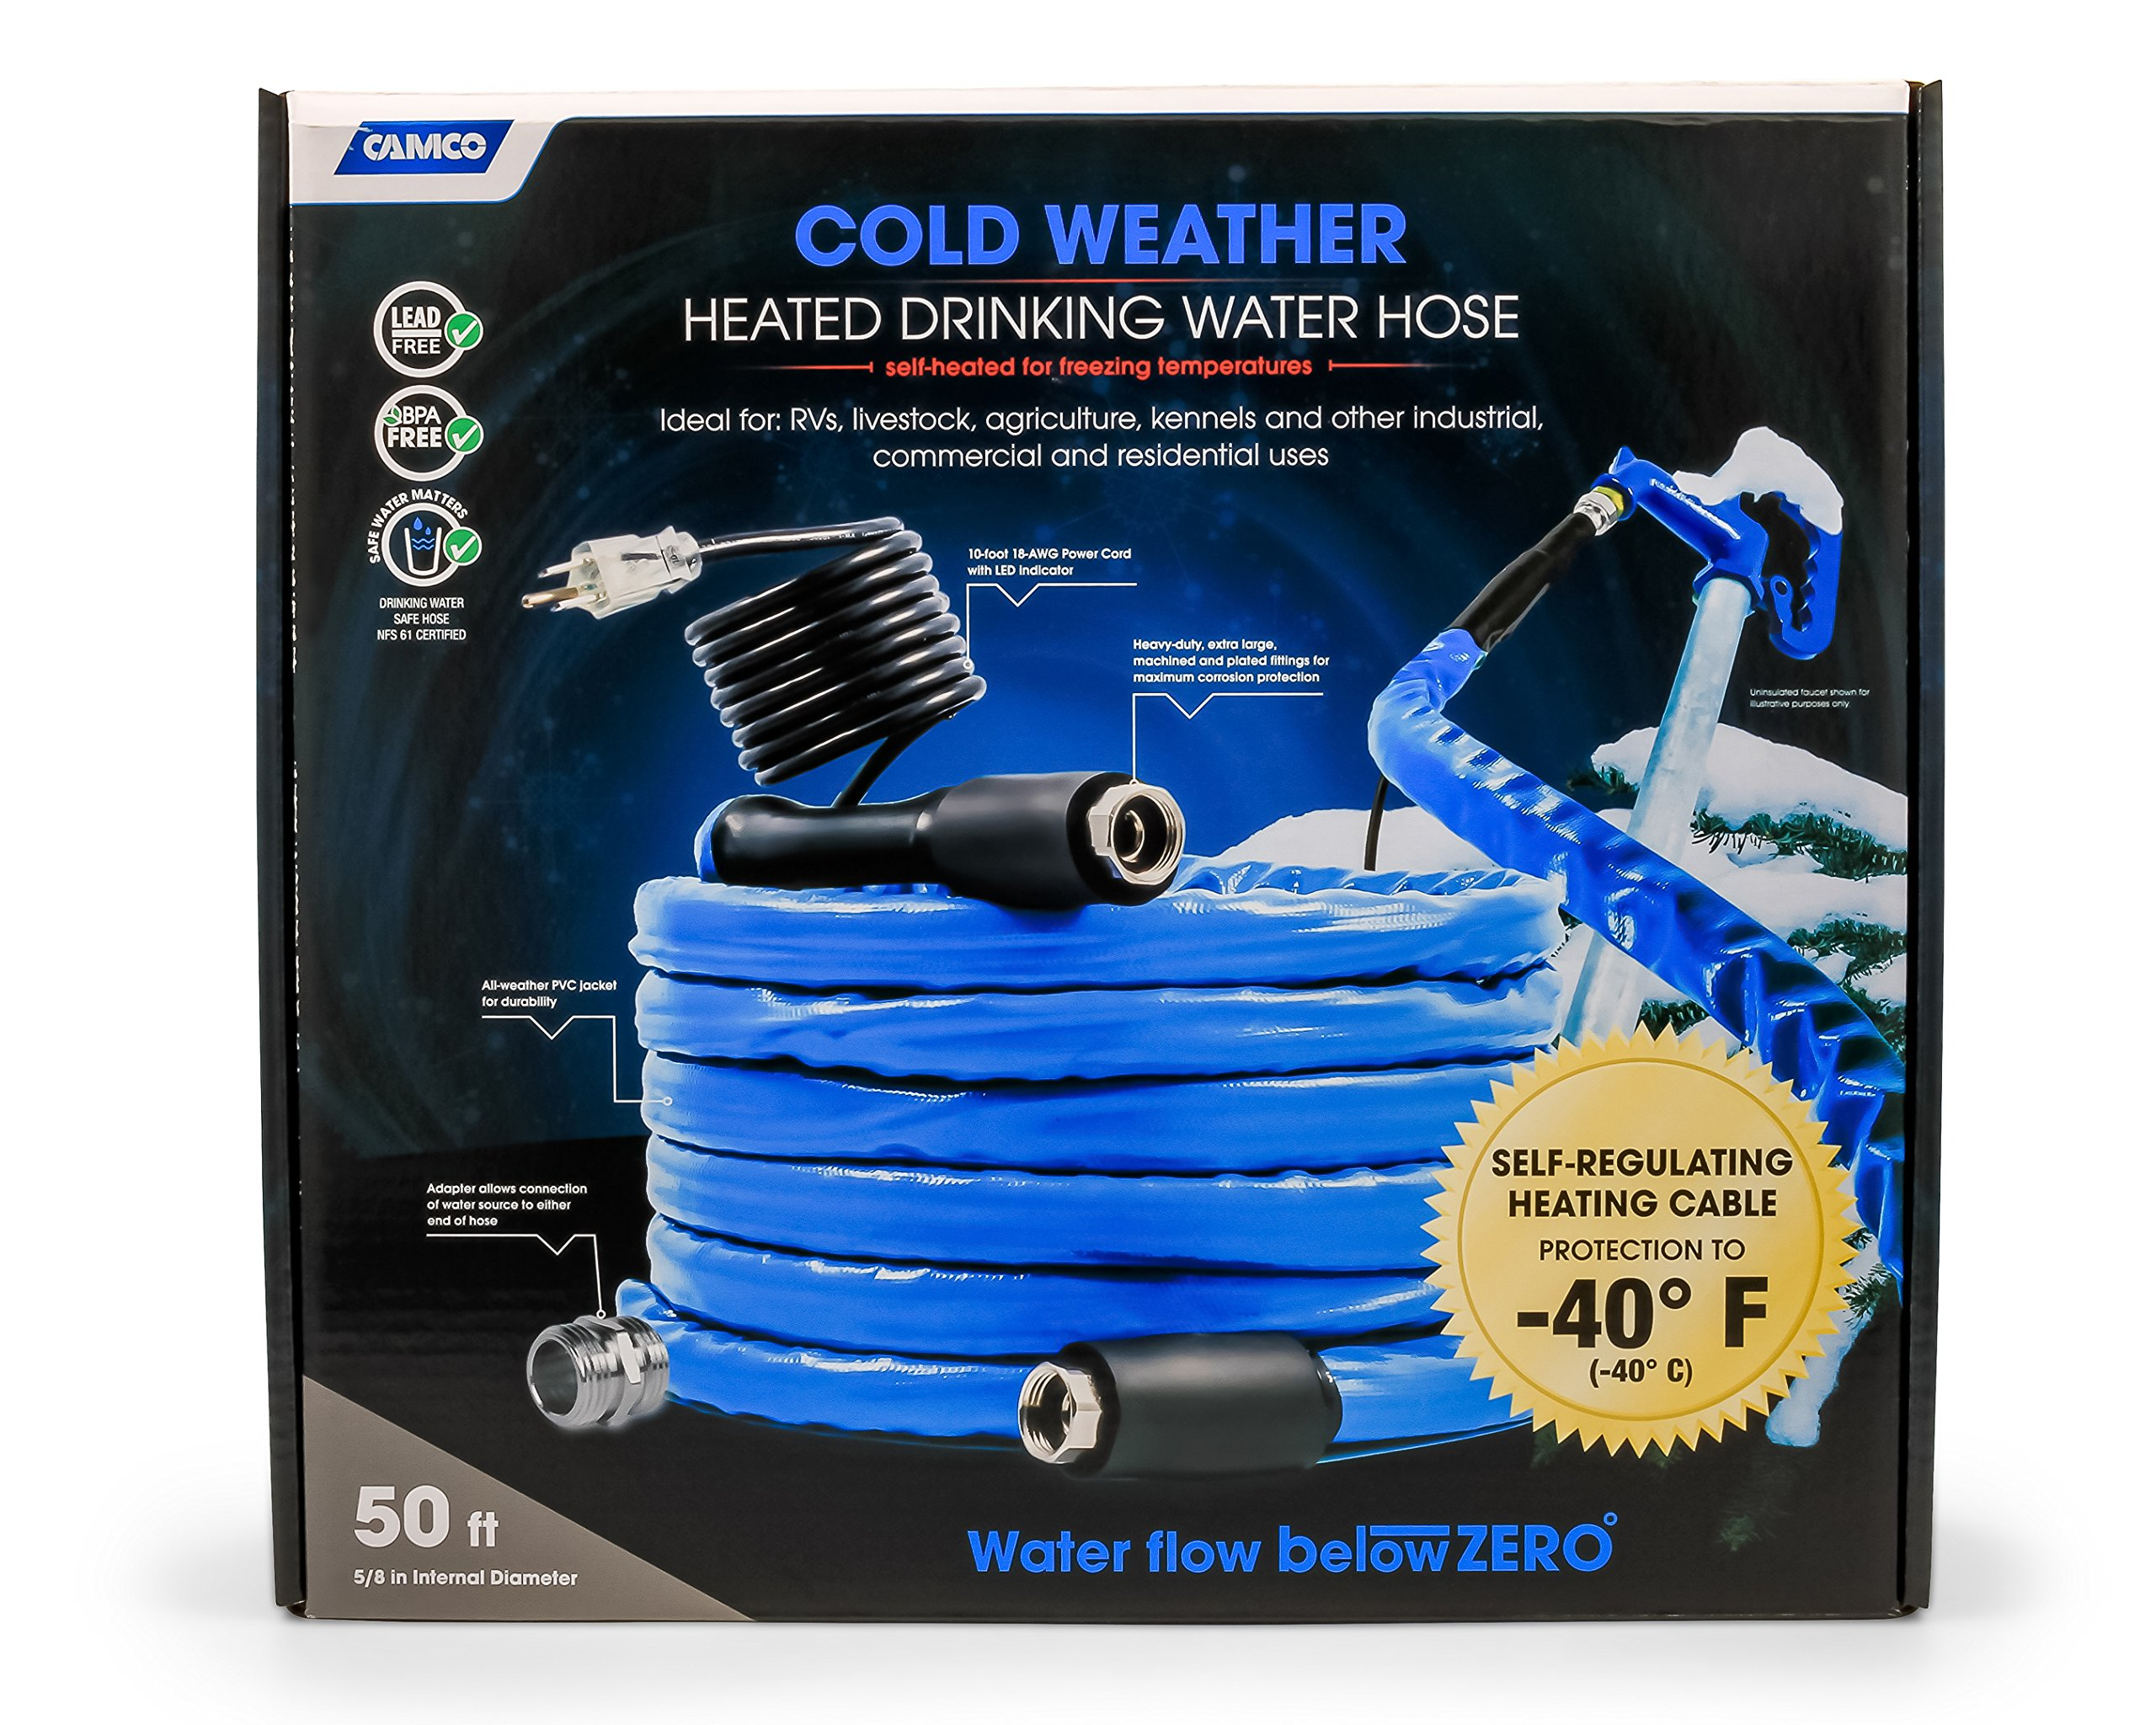 Camco 50ft Cold Weather Heated Drinking Water Hose Can Withstand Temperatures Down to -40°F/C - Lead and BPA Free, Reinforced for Maximum Kink Resistance 5/8'' Inner Diameter (22925)